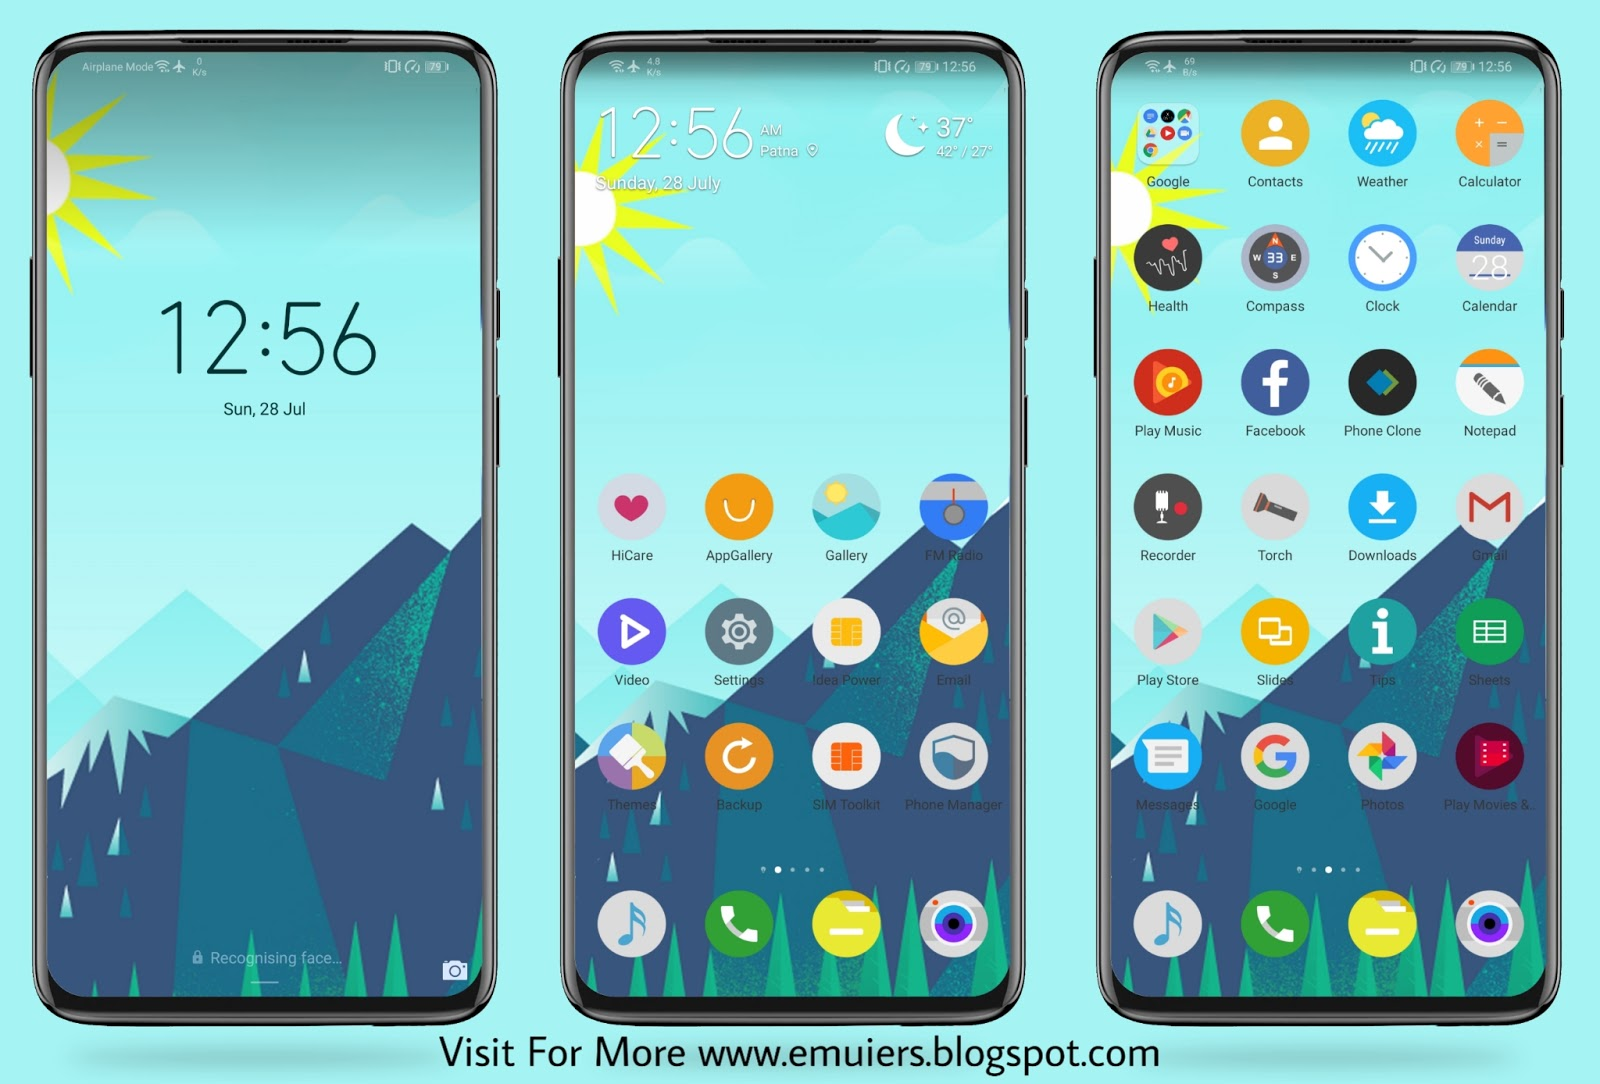 Pretty Landscape EMUI Theme Download For Huawei & Honor Phones